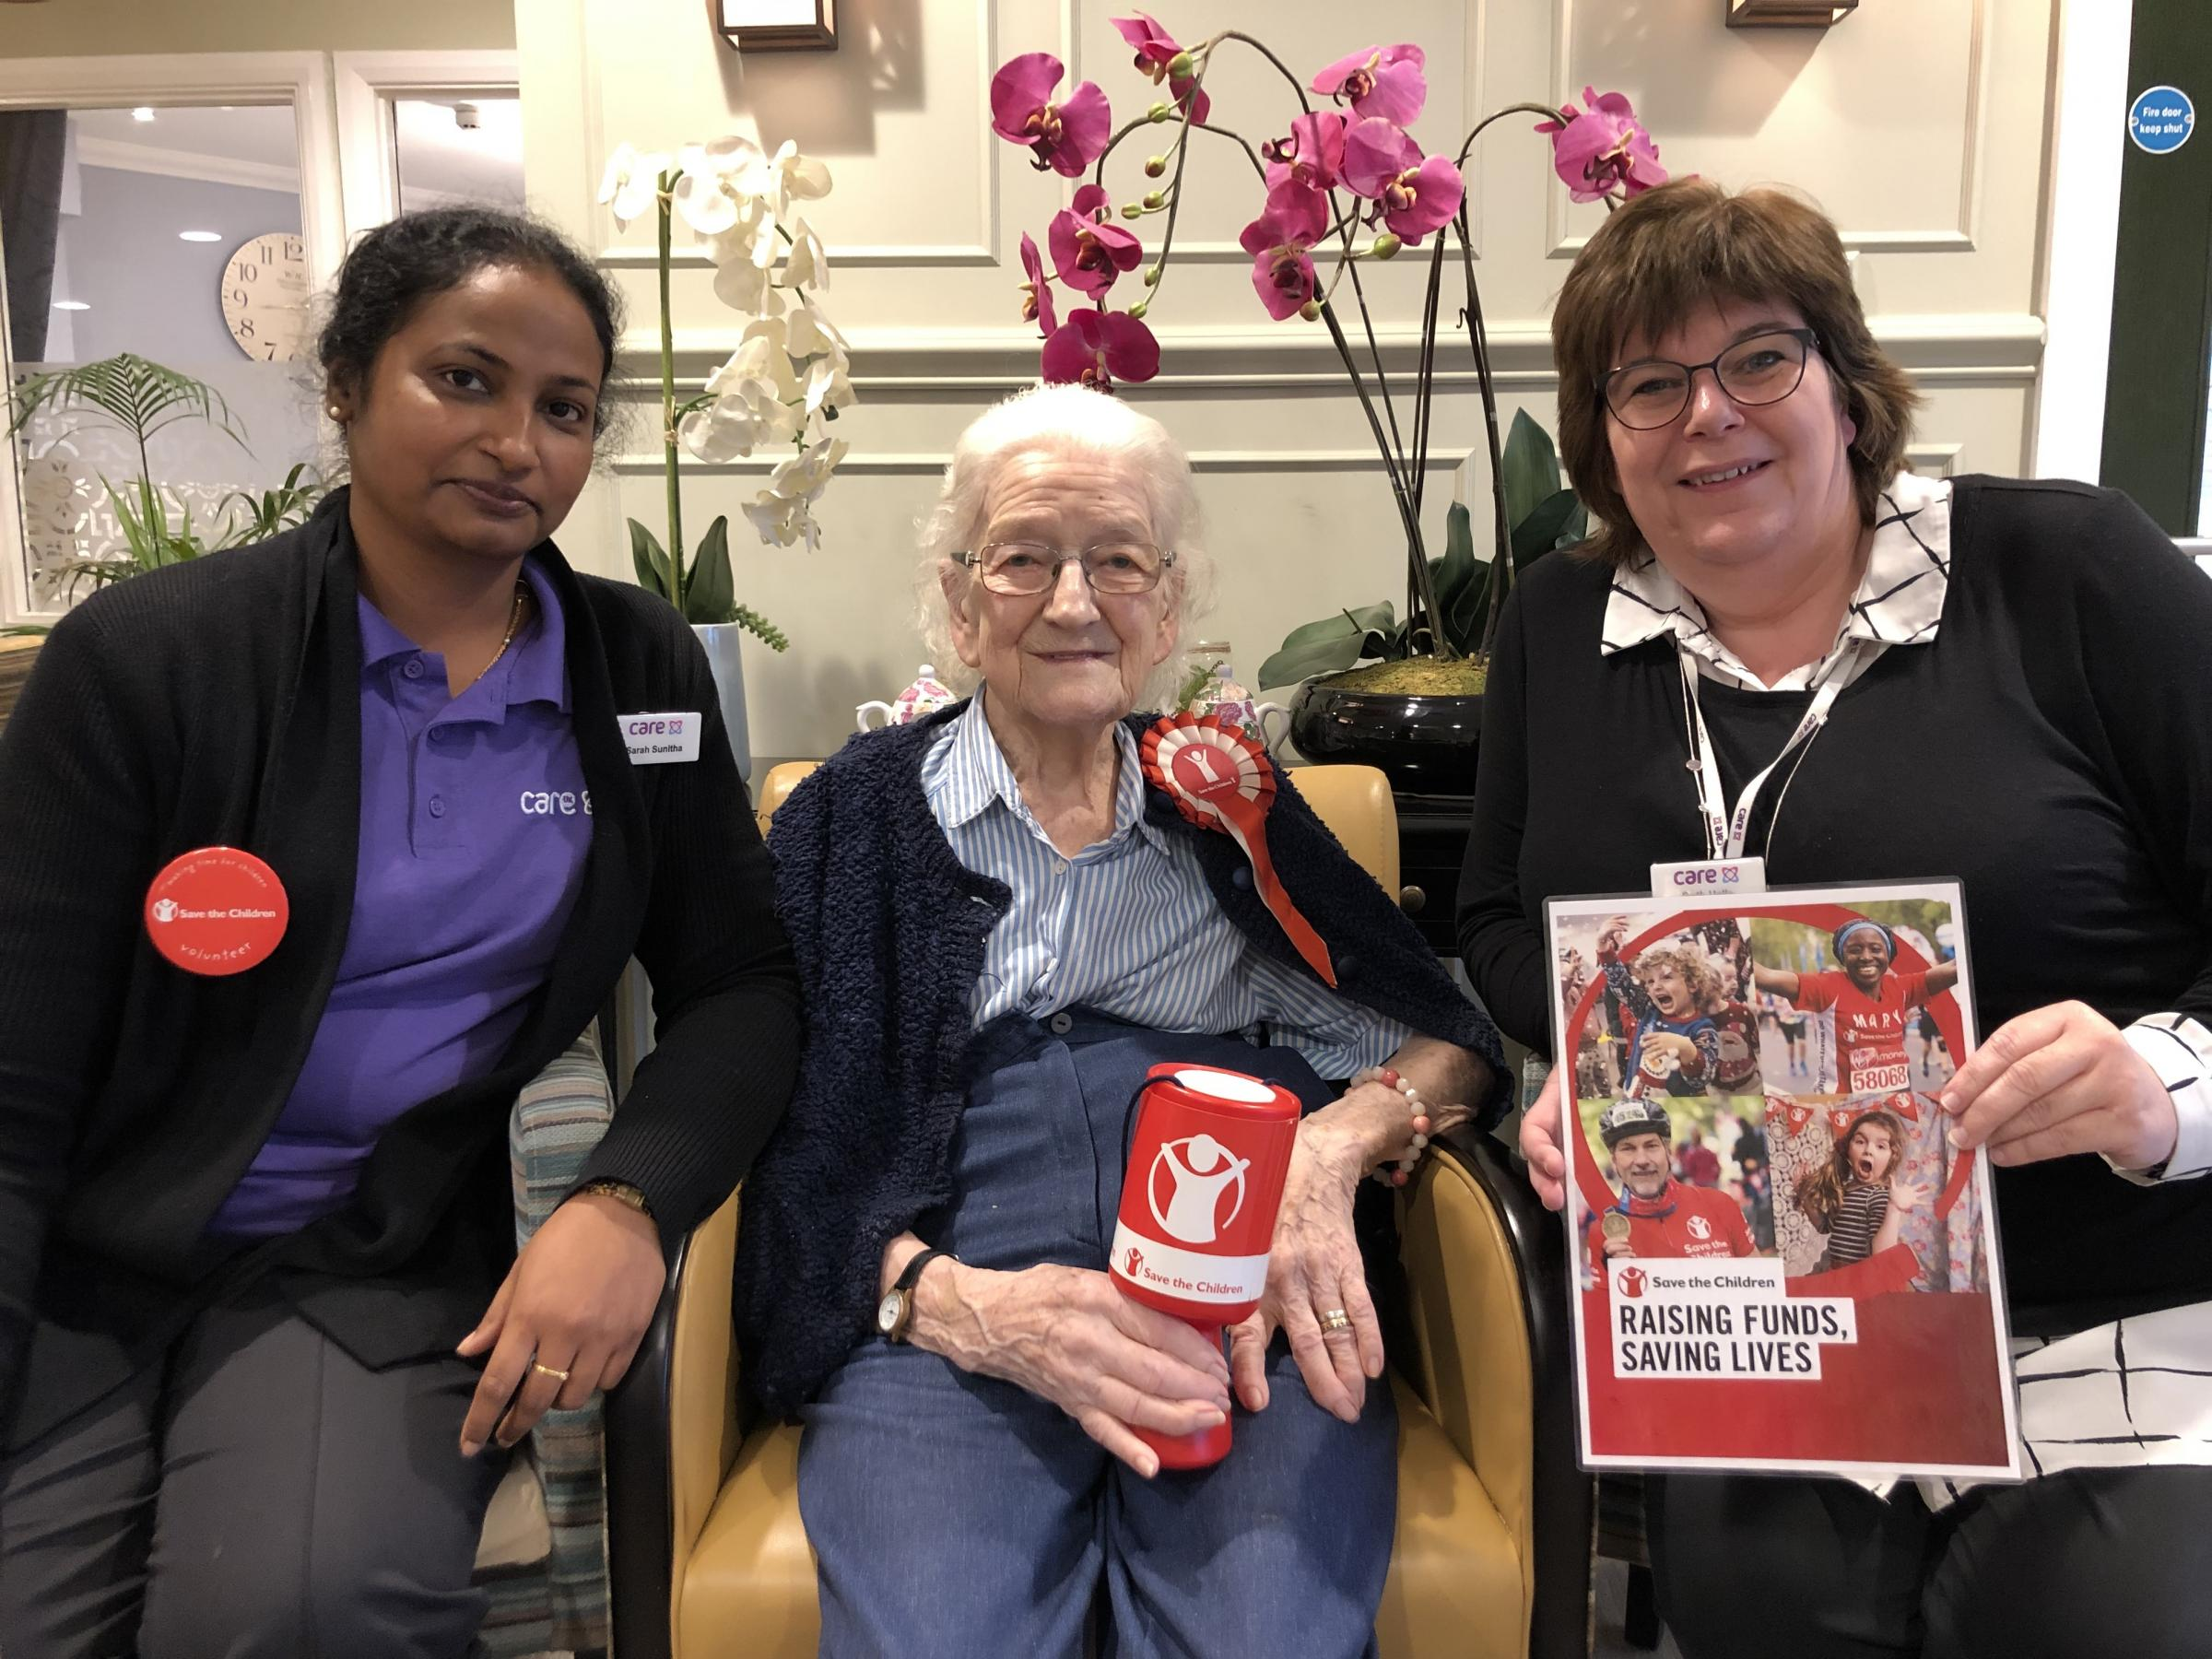 Margaret with Buchanan Court team member Sarah Sunitha and Buchanan Court home manager Ruth Halls